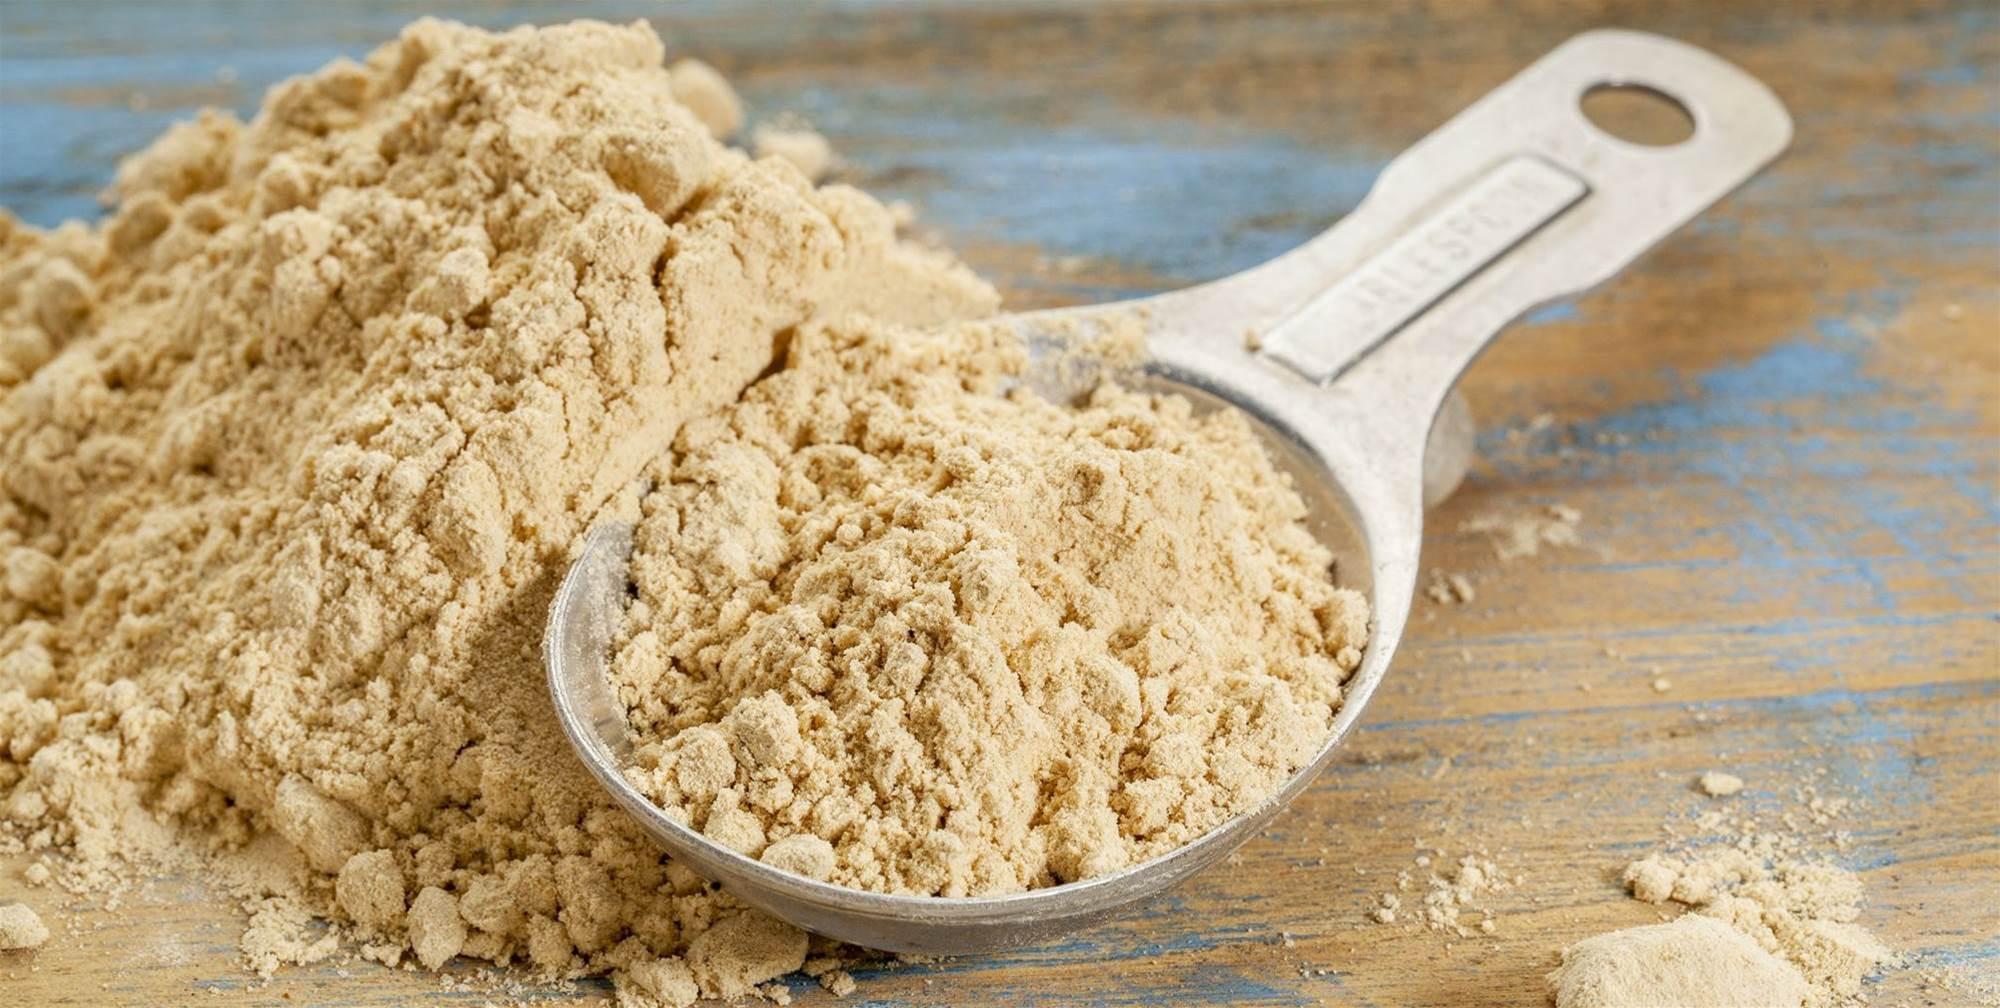 Benefits of Maca Root: How It Impacts Your Hormones, Libido, and Energy